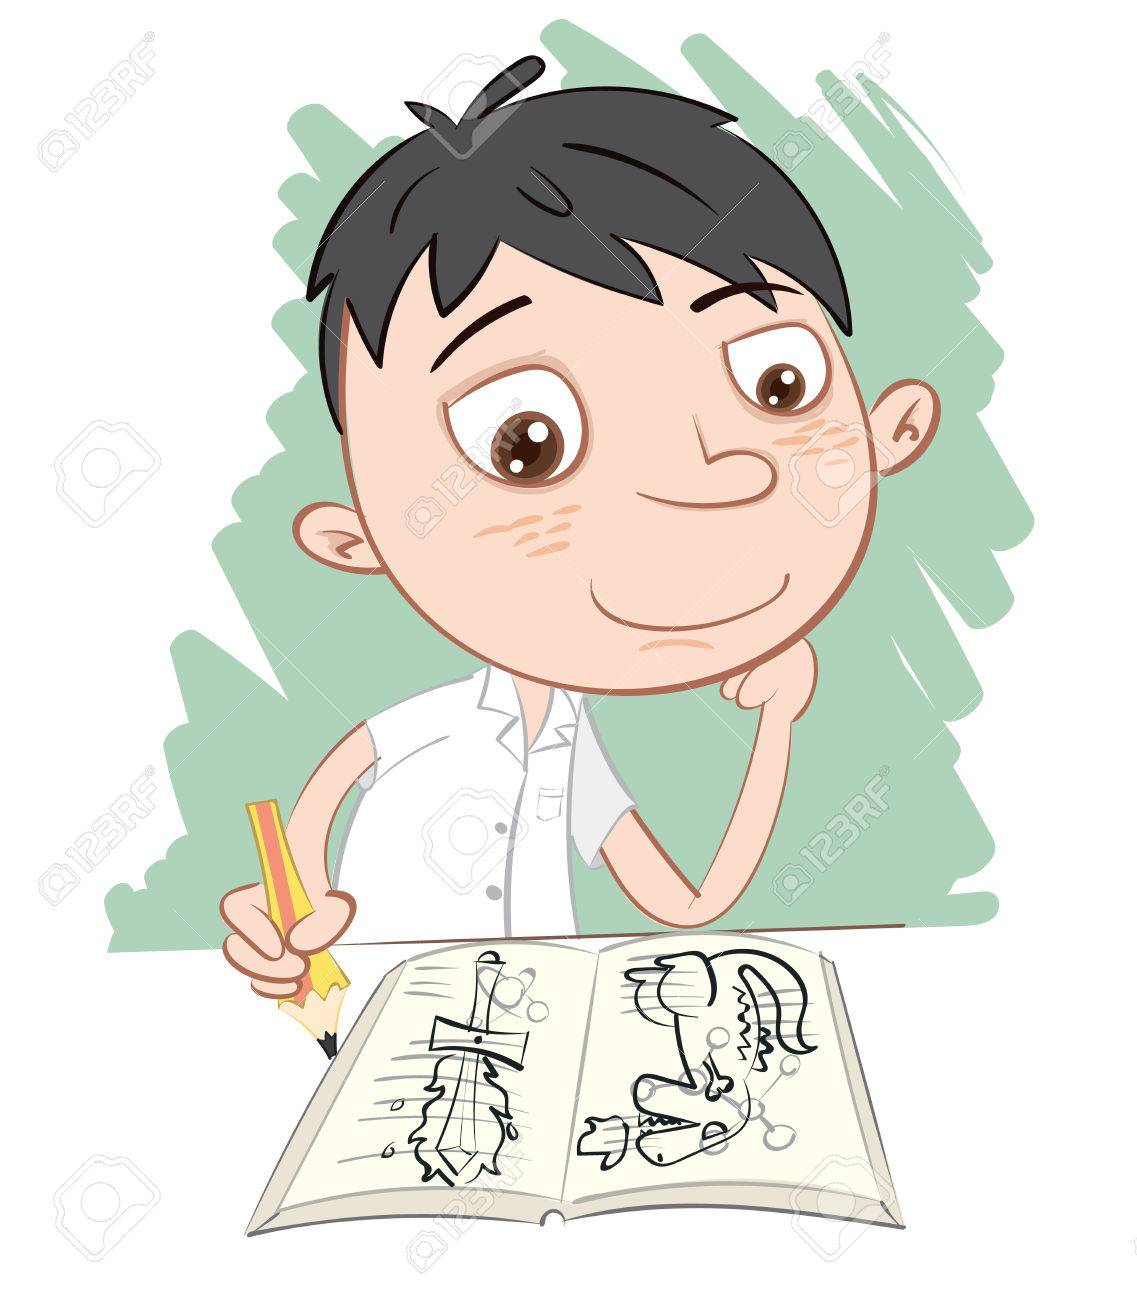 1137x1300 Cartoon Schoolboy Drawing Over On Textbook. Royalty Free Cliparts